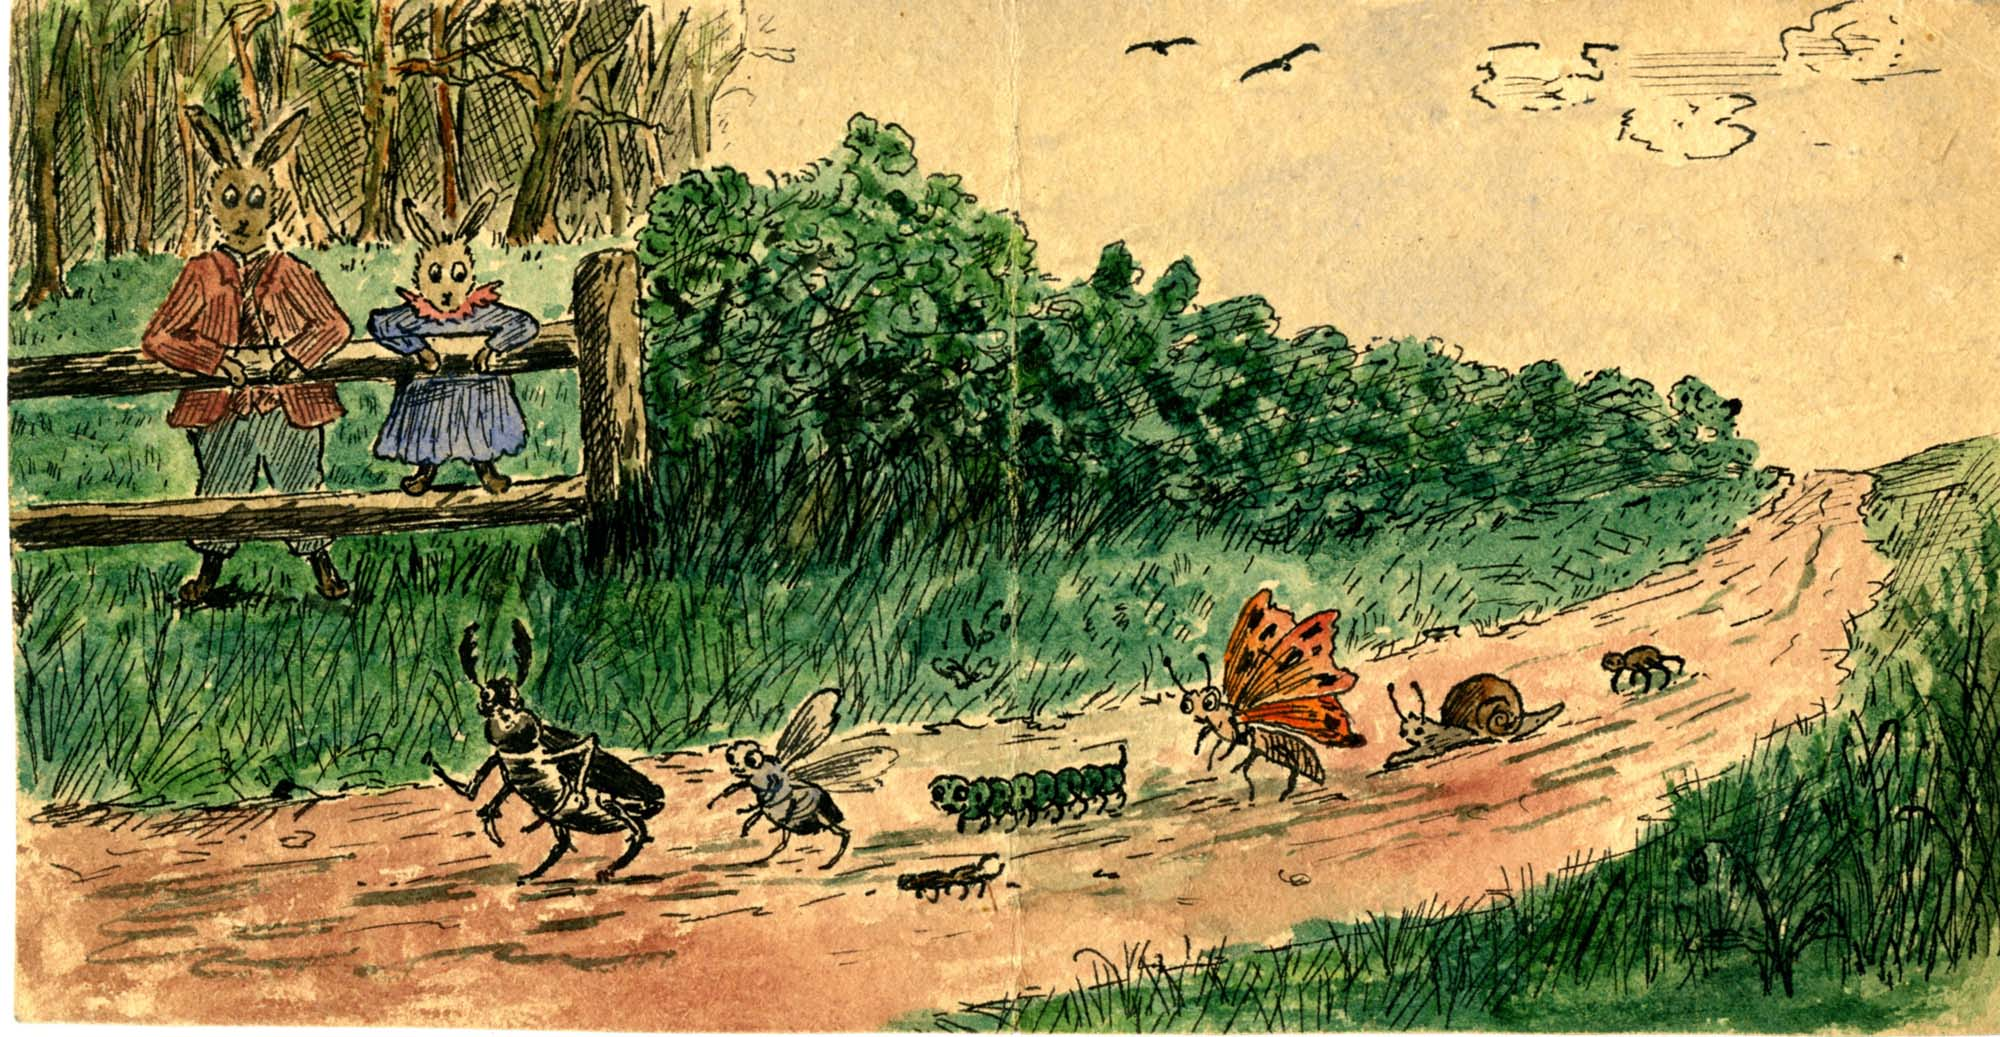 a drawing of two rabbits dressed in clothes watching a parade of insects walk down a country lane